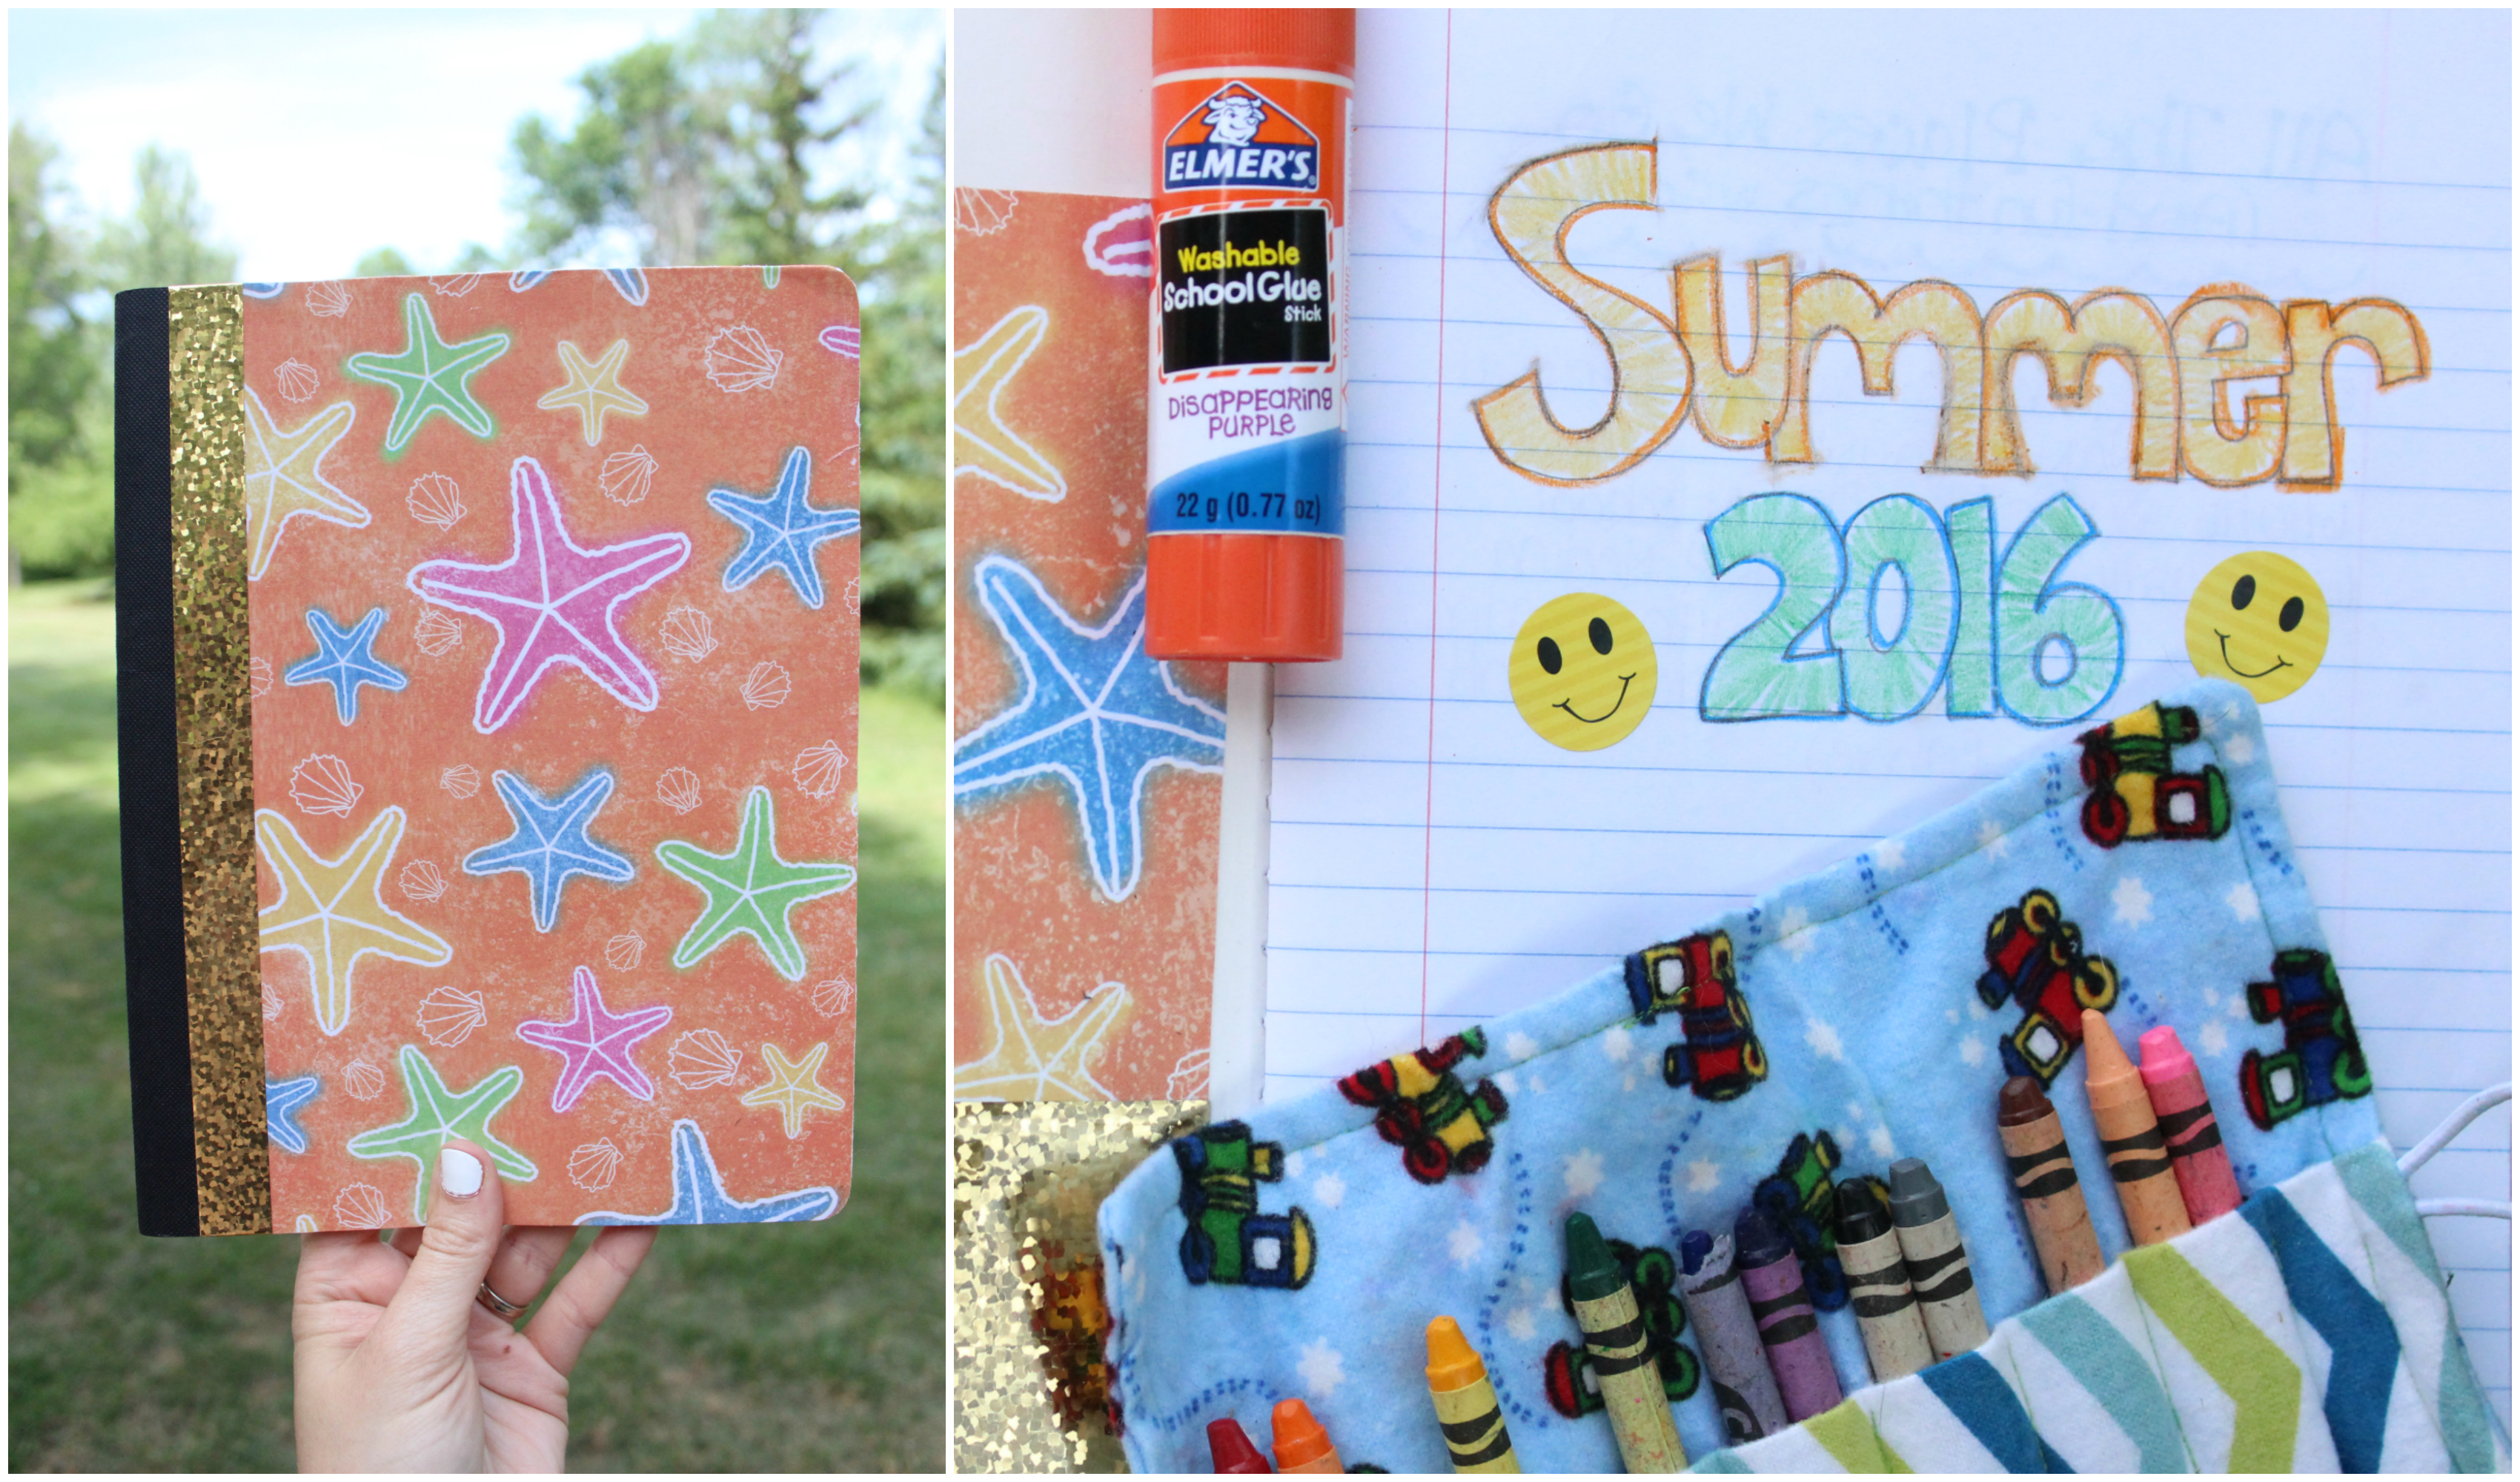 Keeping a Summer Journal as a simple, inexpensive scrapbook will preserve priceless memories for years to come